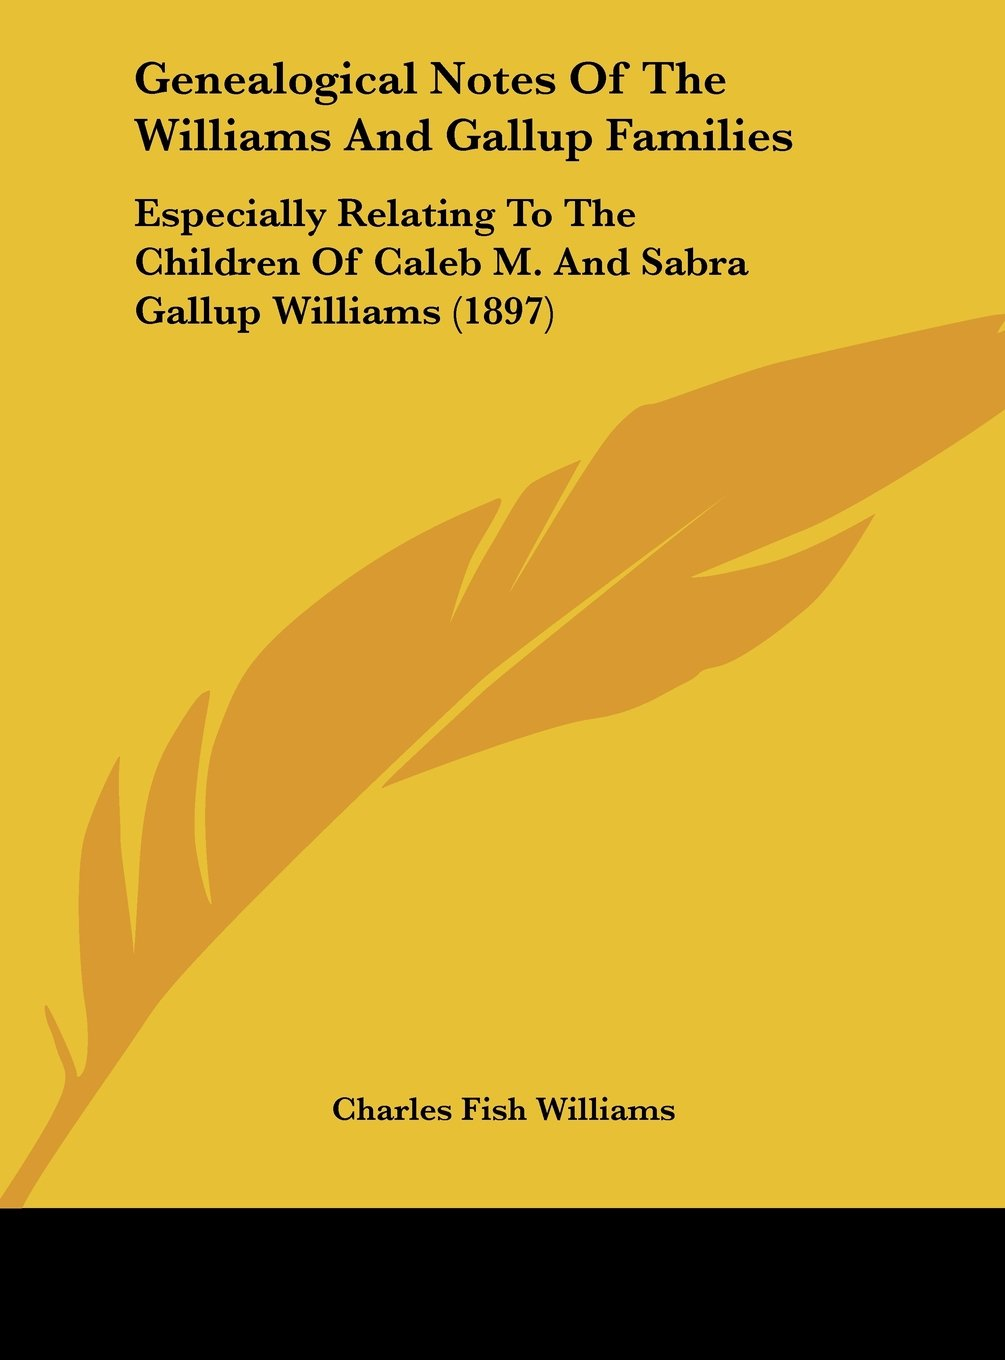 Genealogical Notes Of The Williams And Gallup Families: Especially Relating To The Children Of Caleb M. And Sabra Gallup Williams (1897) PDF